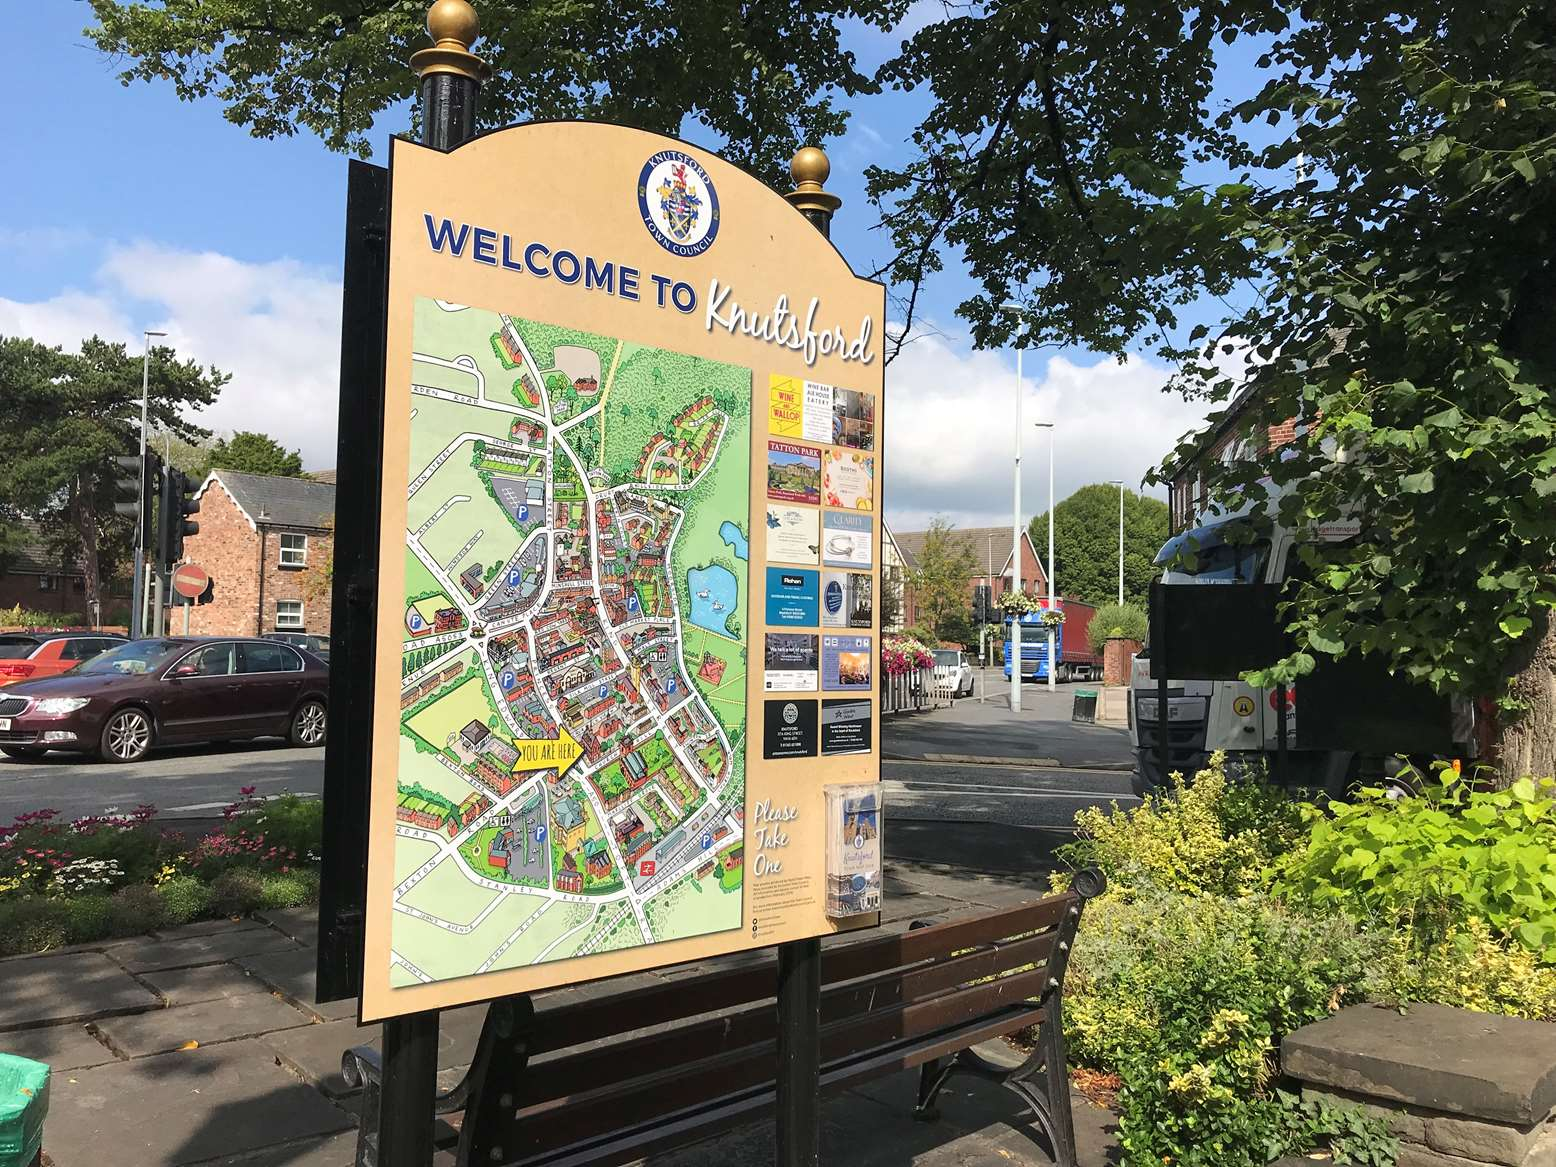 A large map of Knutsford Town Centre